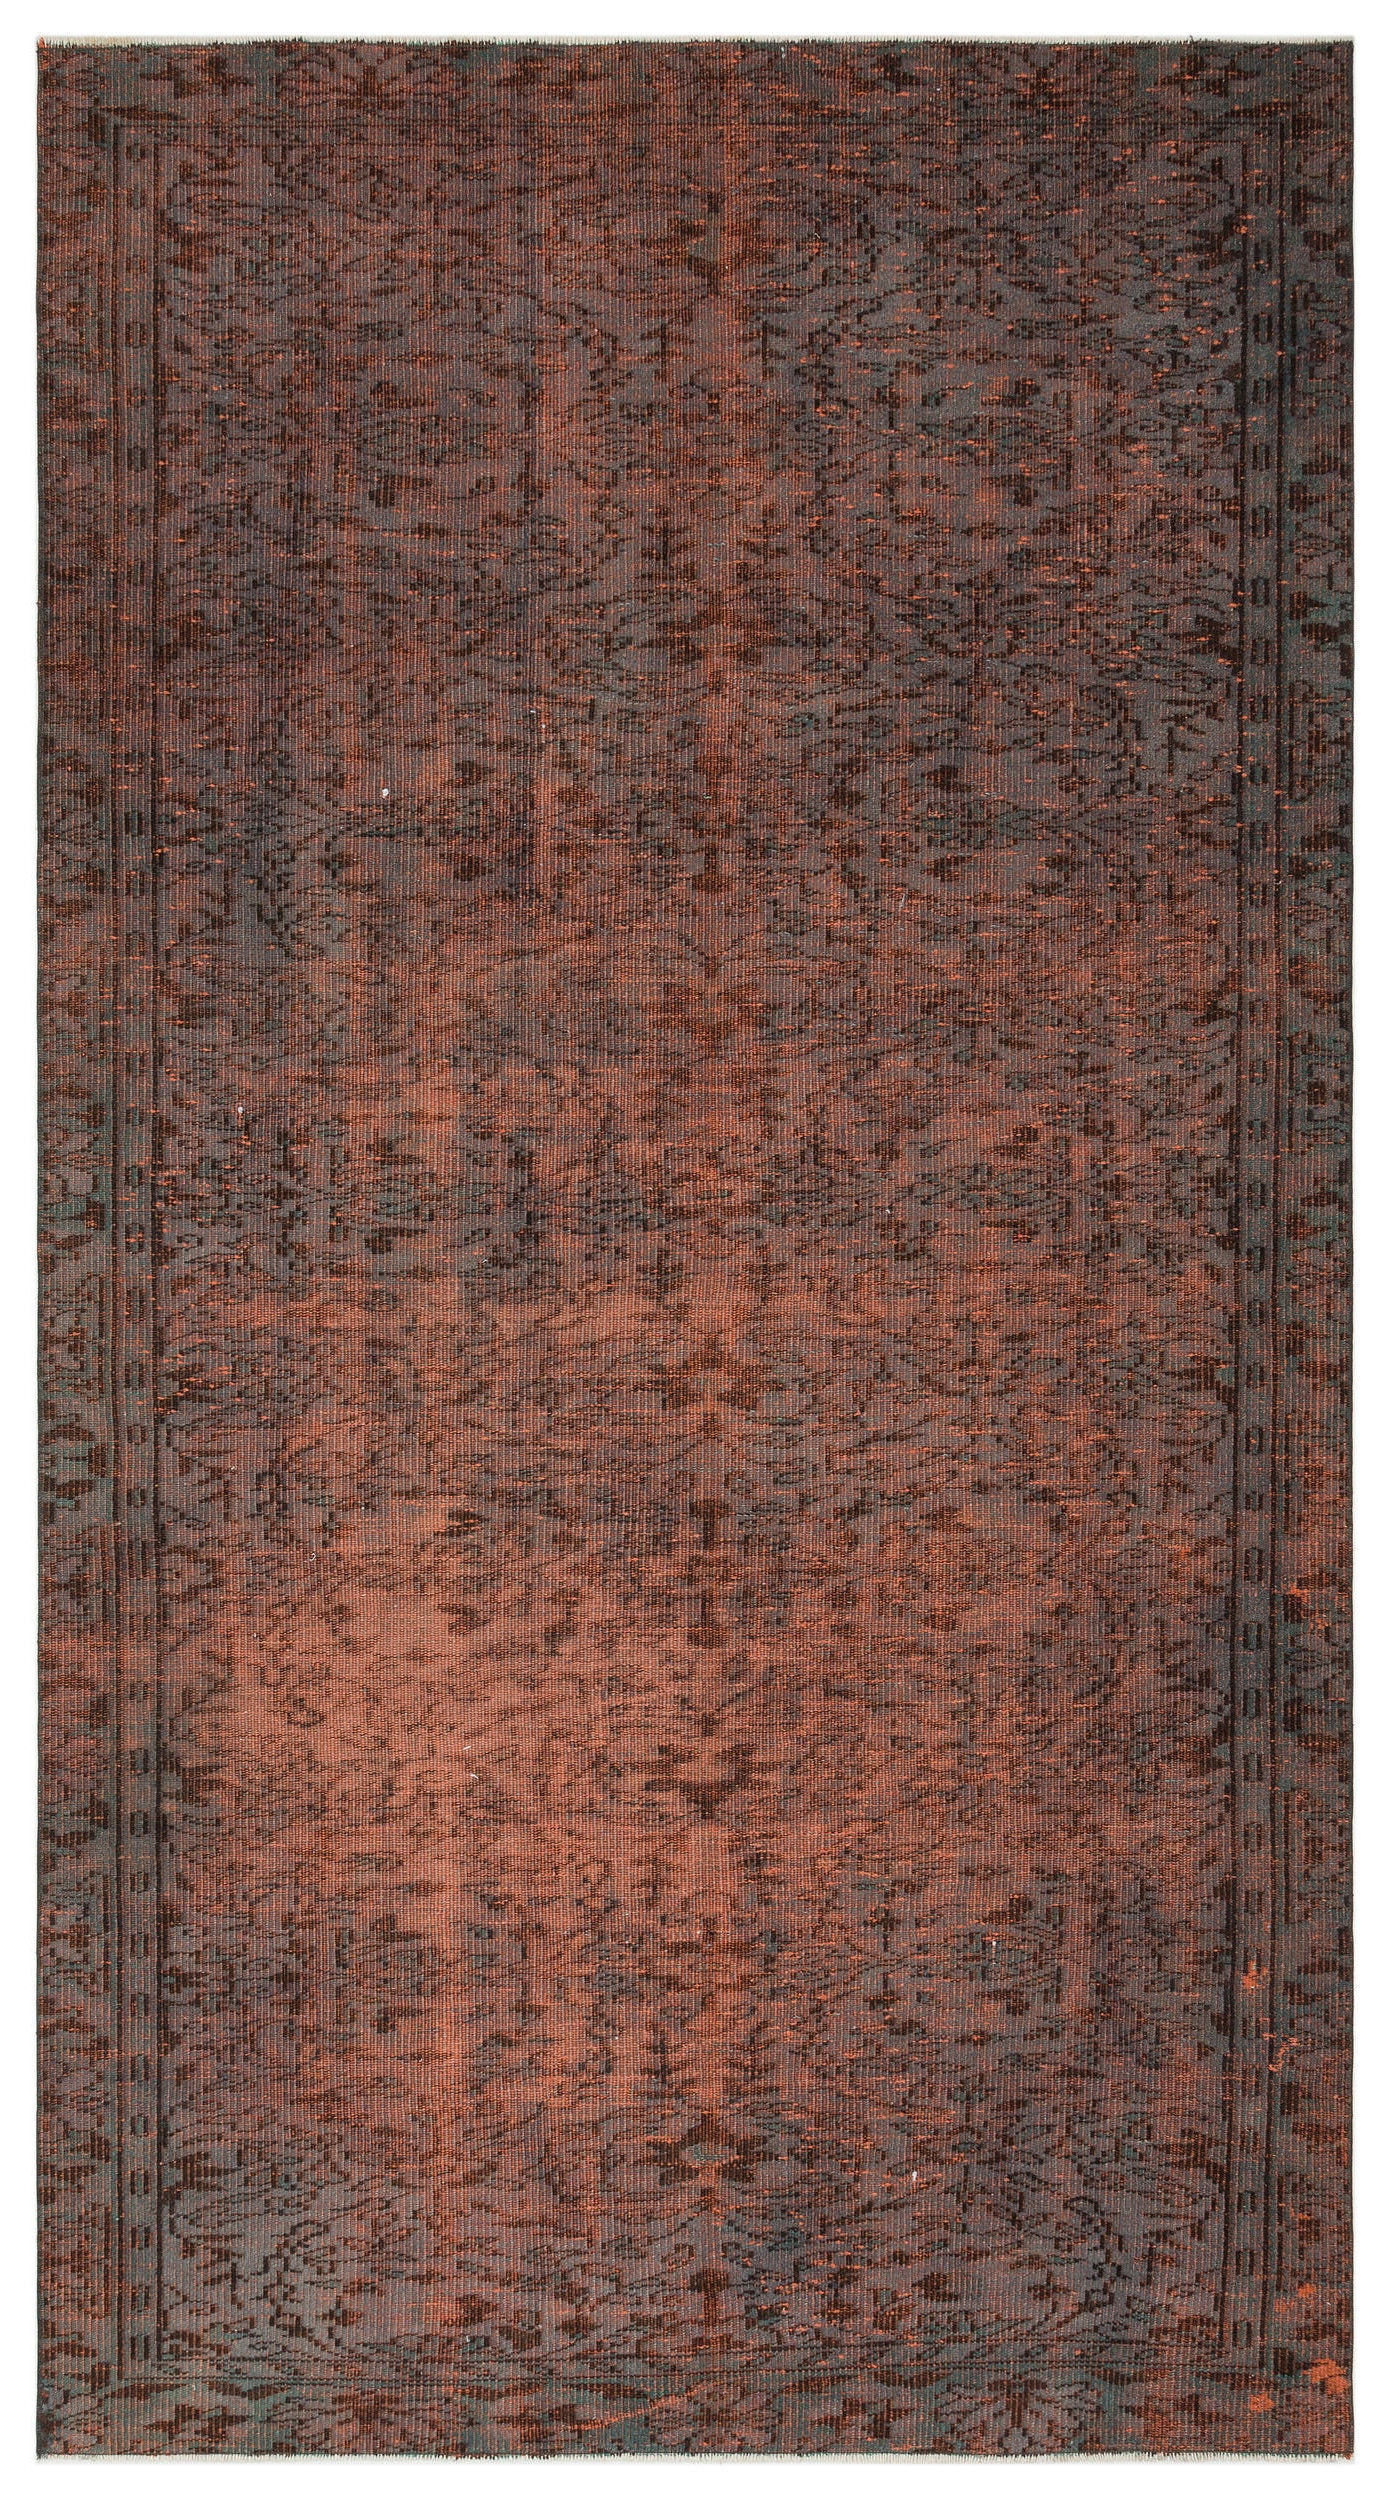 Brown Over Dyed Vintage Rug 5'3'' x 9'9'' ft 159 x 298 cm